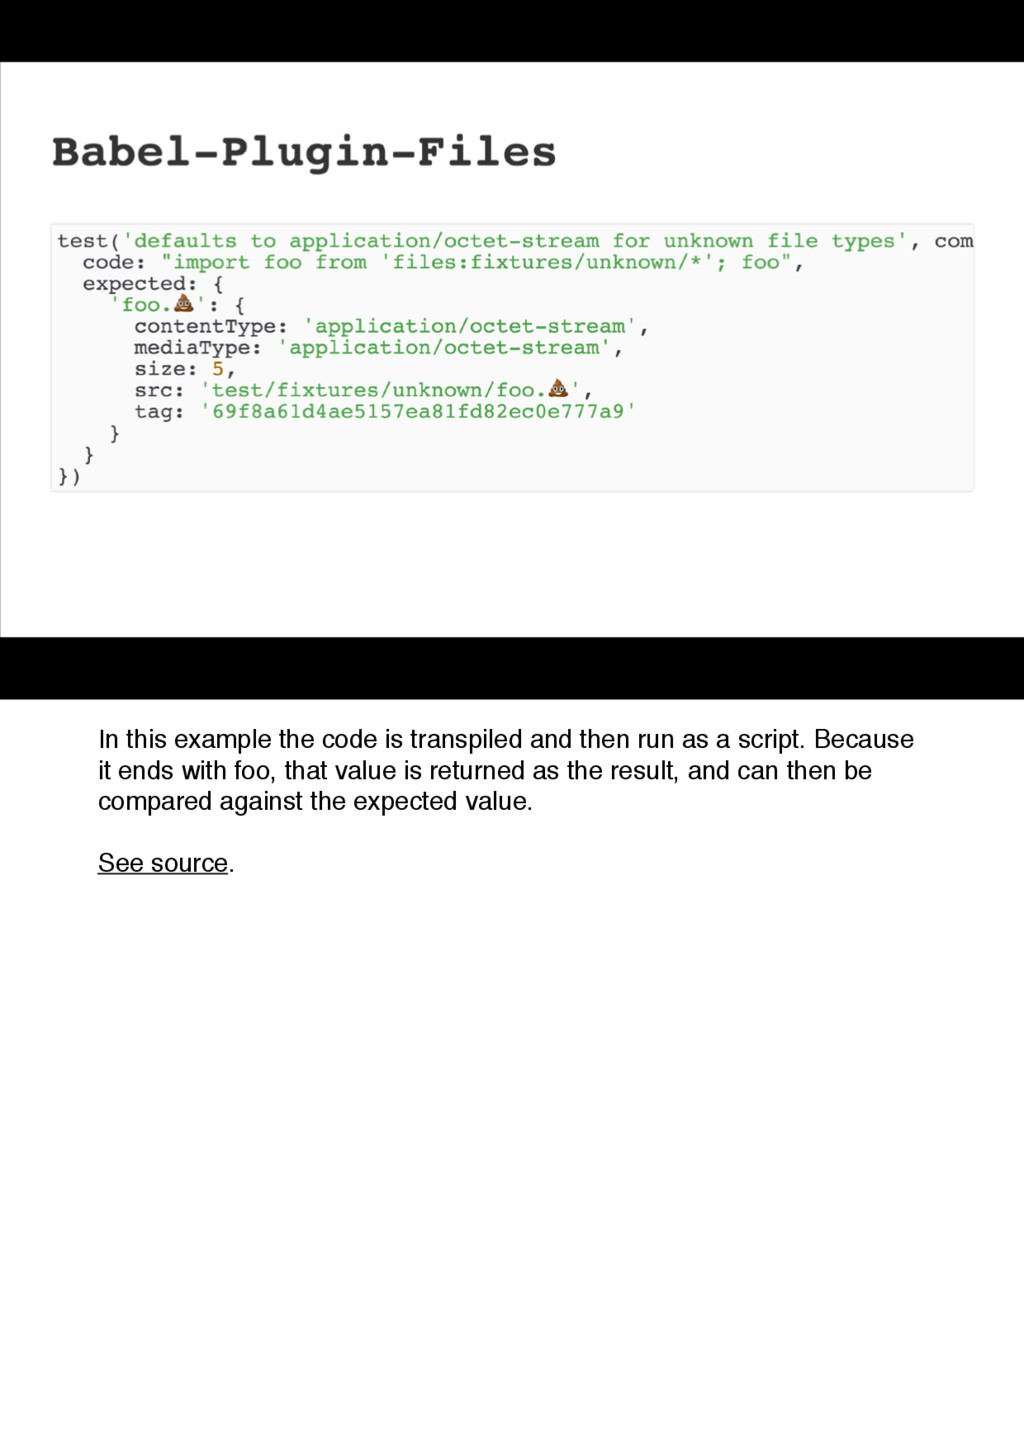 In this example the code is transpiled and then...